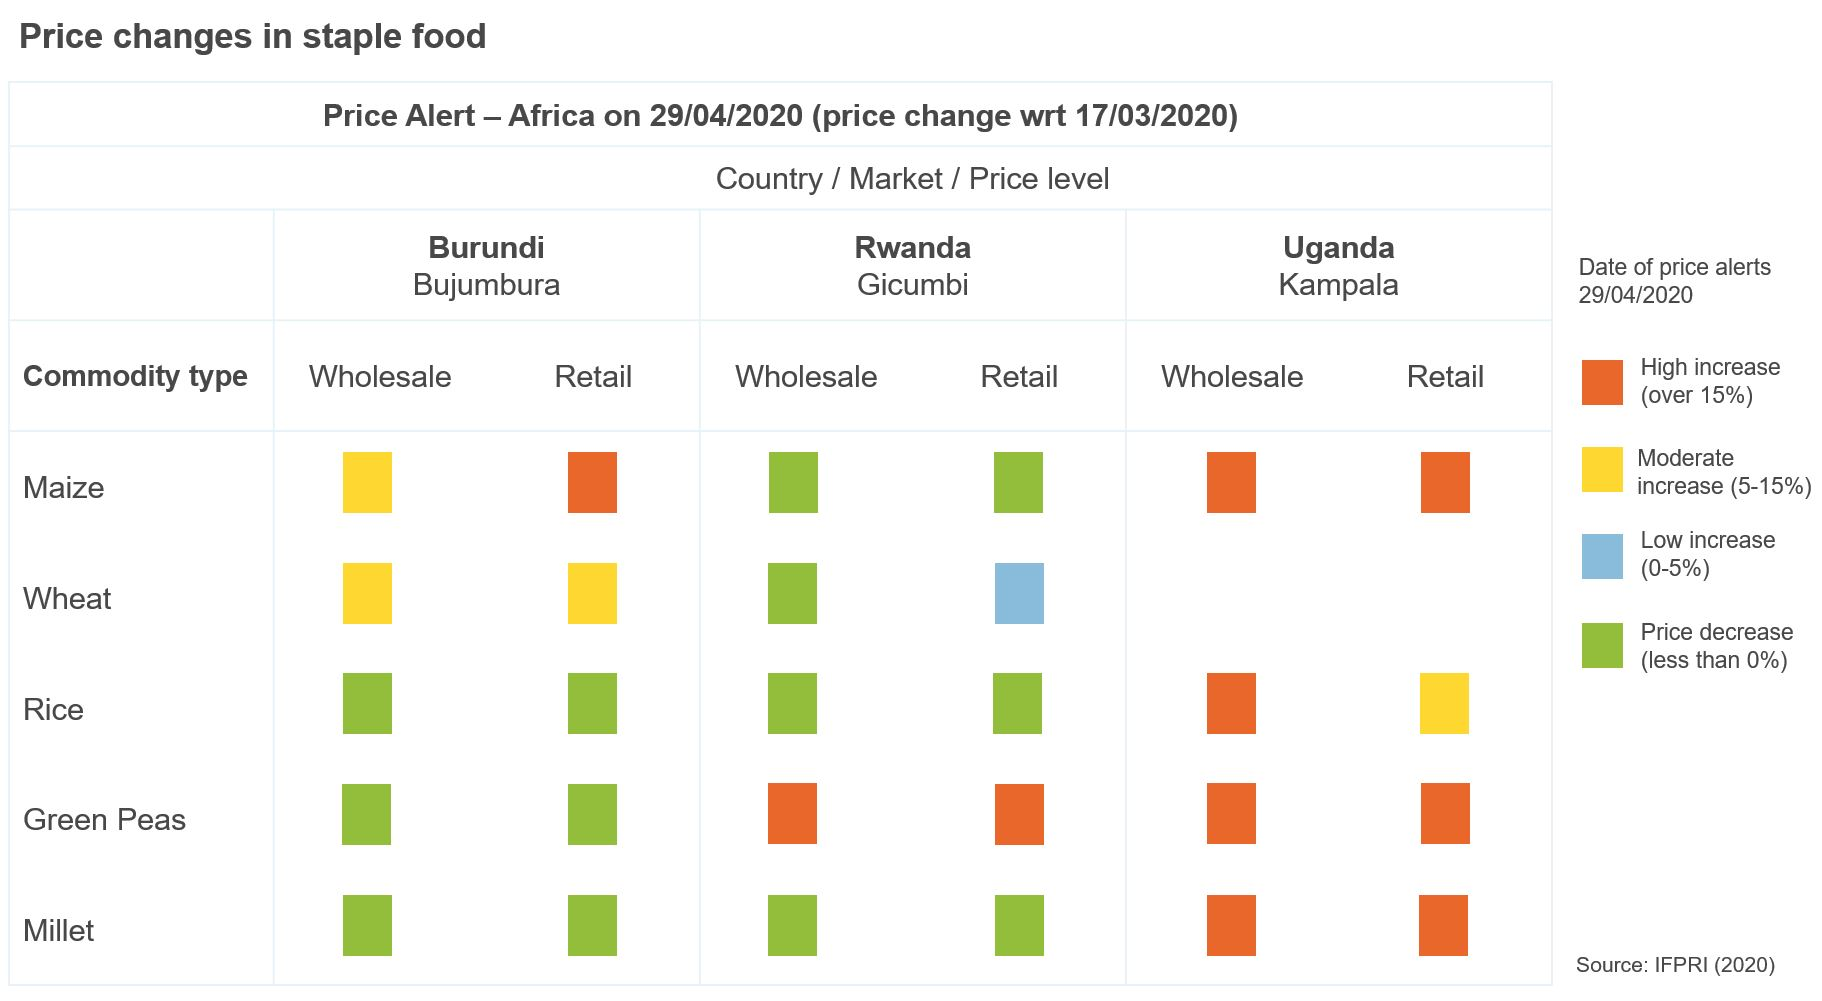 Figure showing price changes in staple food